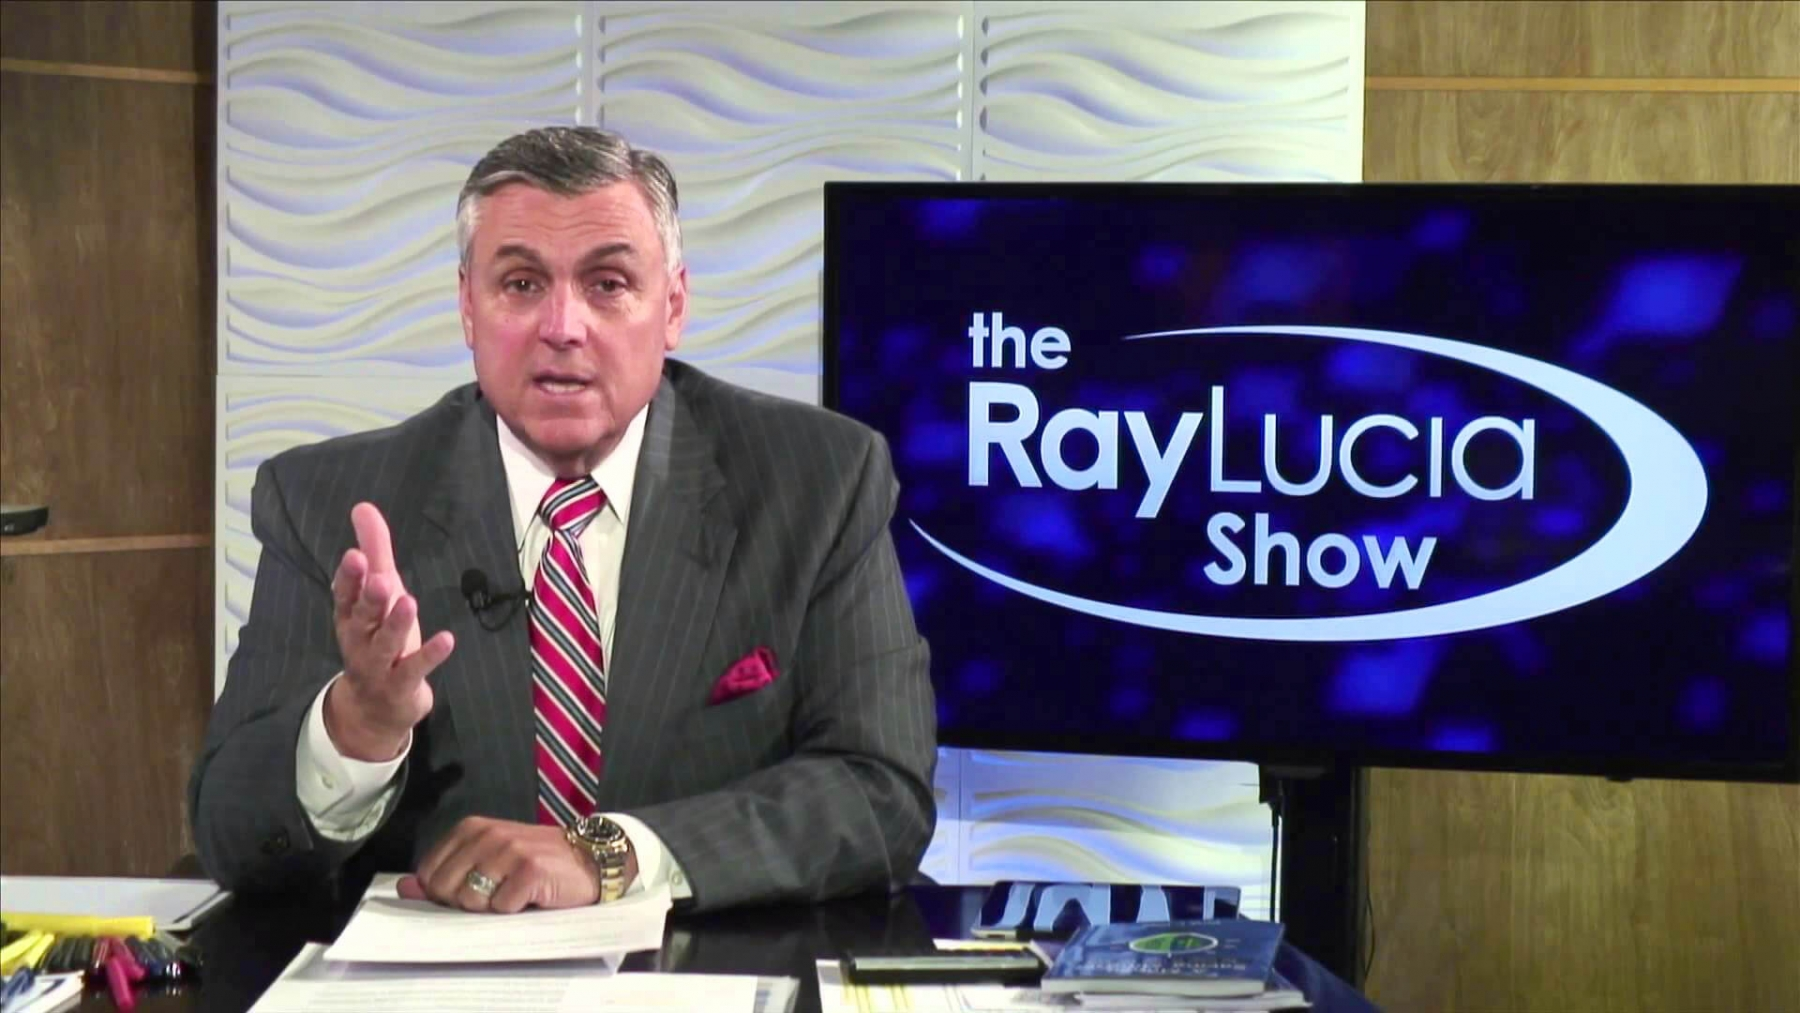 The Ray Lucia Show